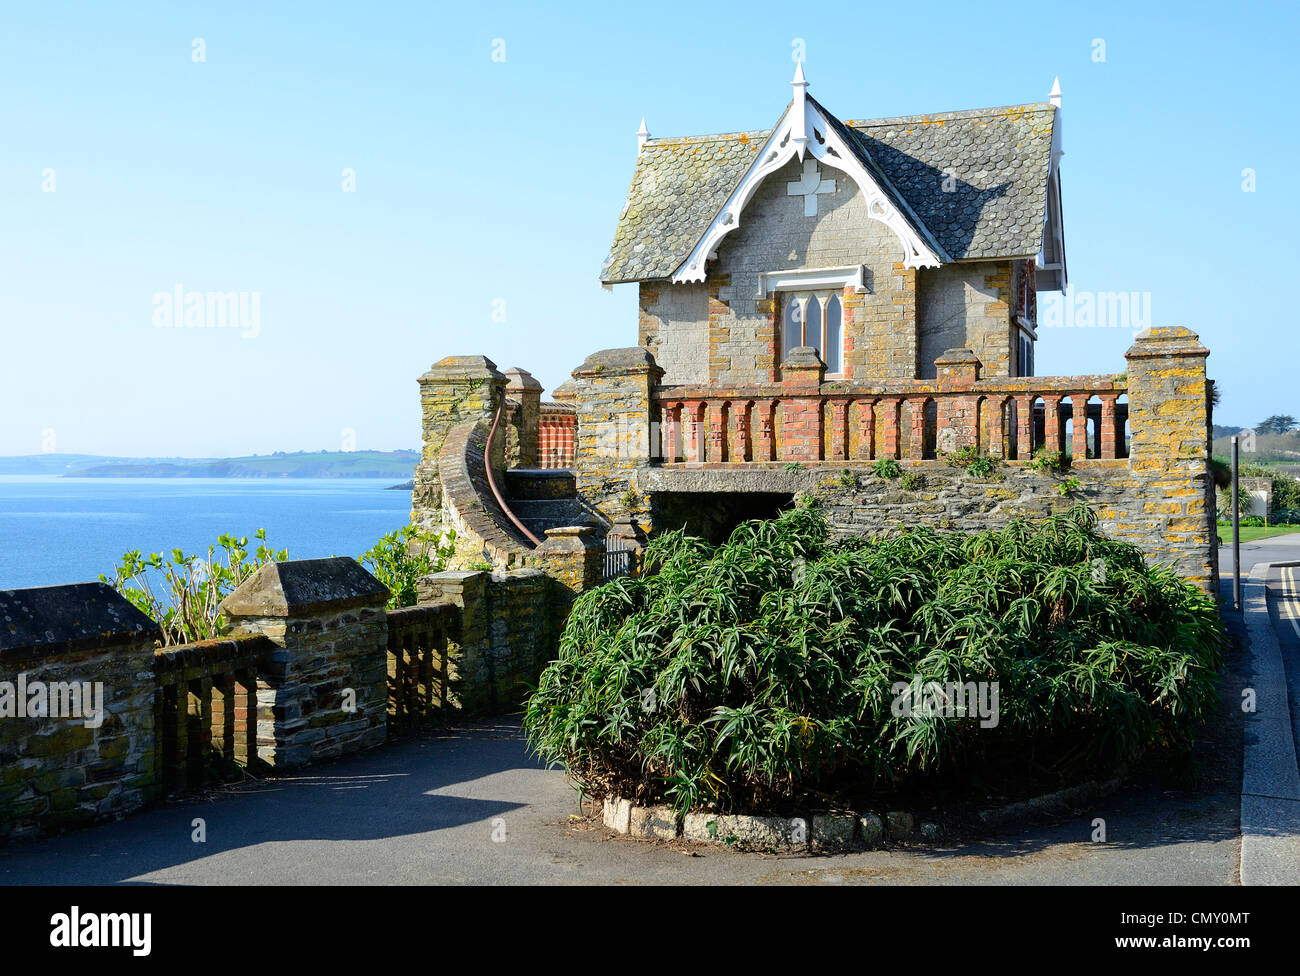 the summerhouse on cliff road in falmouth, uk - Stock Image